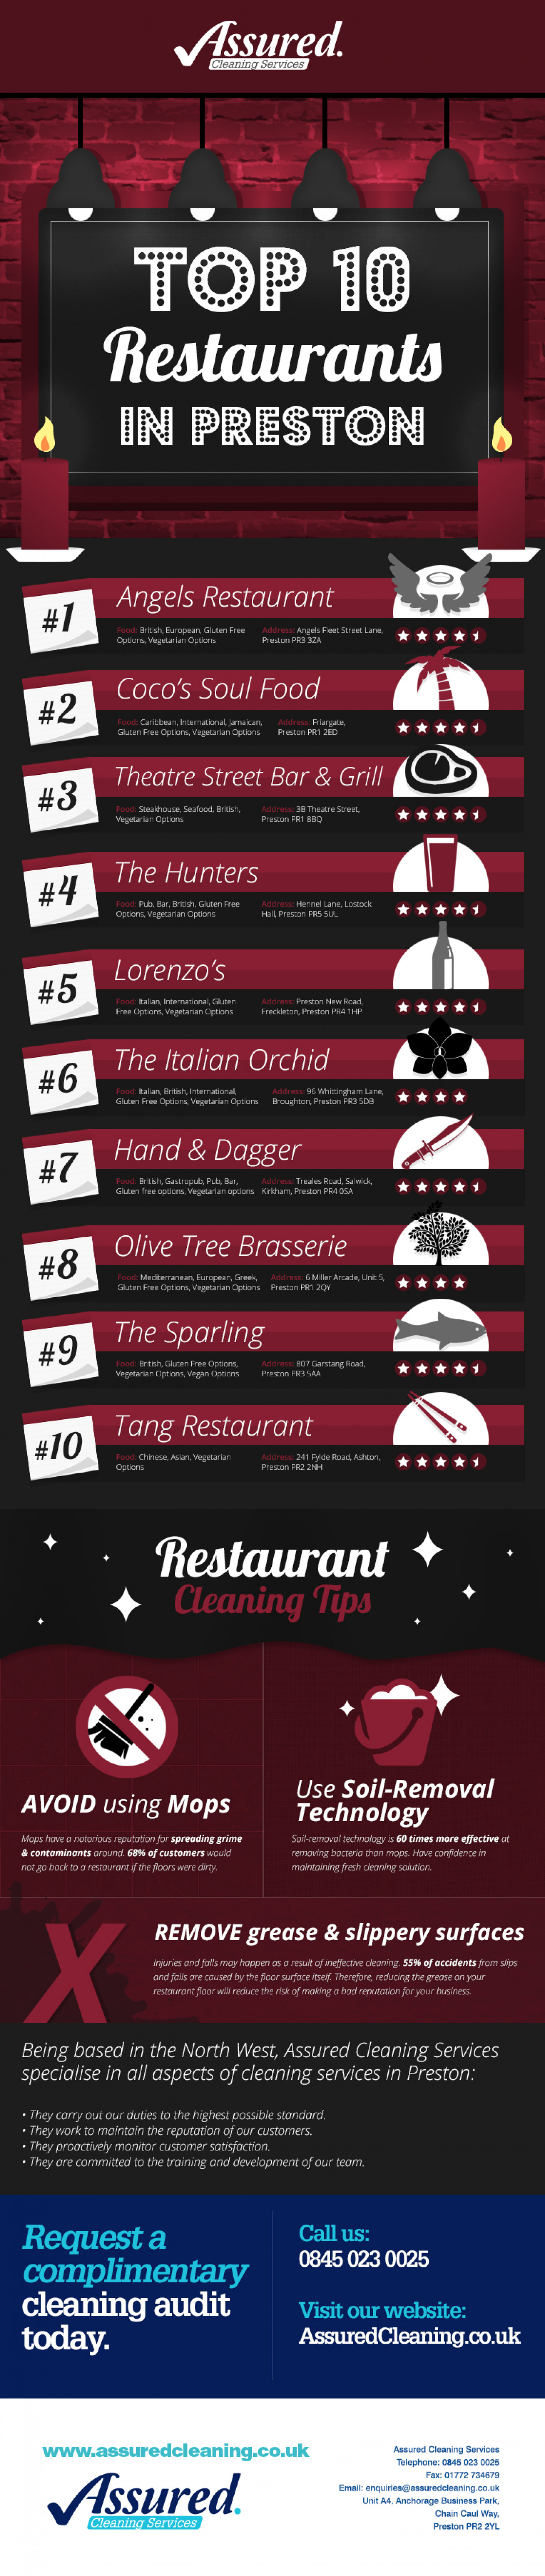 Top 10 Restaurants In Preston Infographic